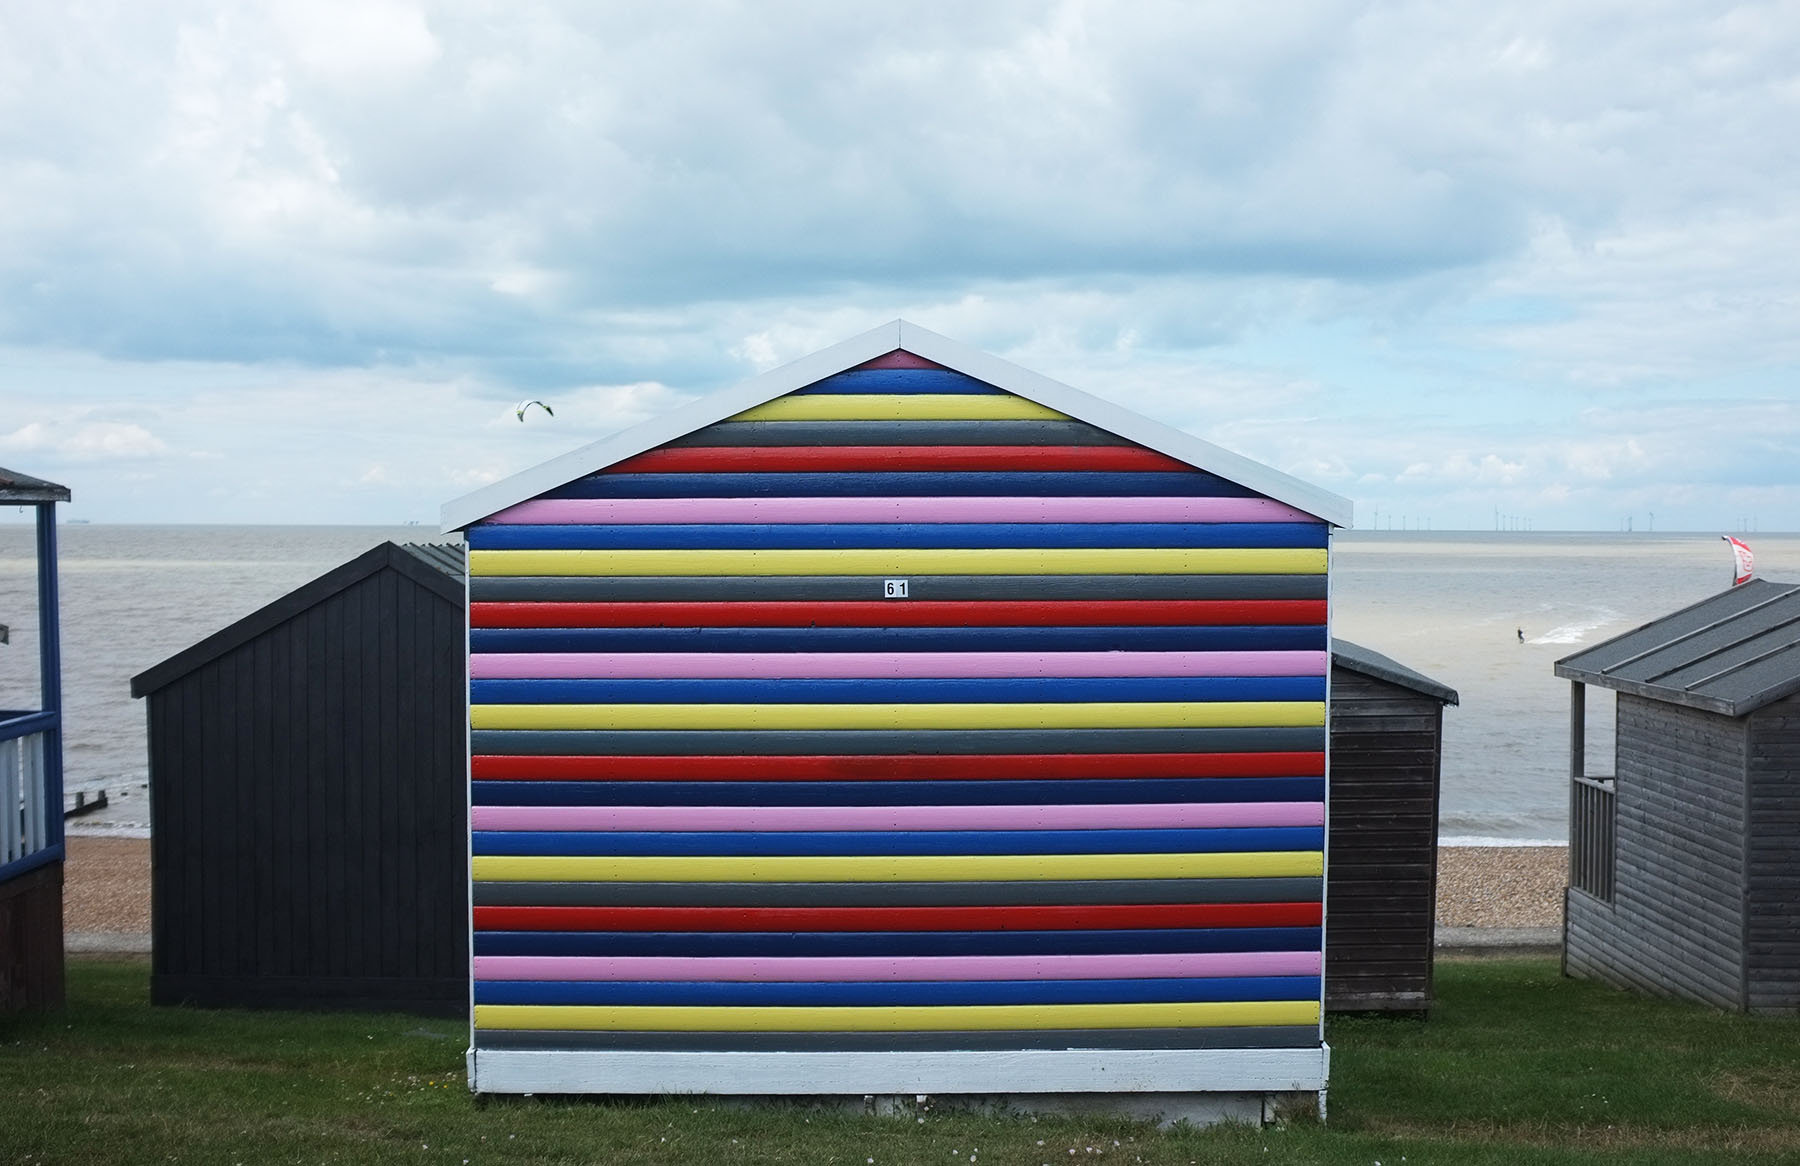 uk-whitstable_17